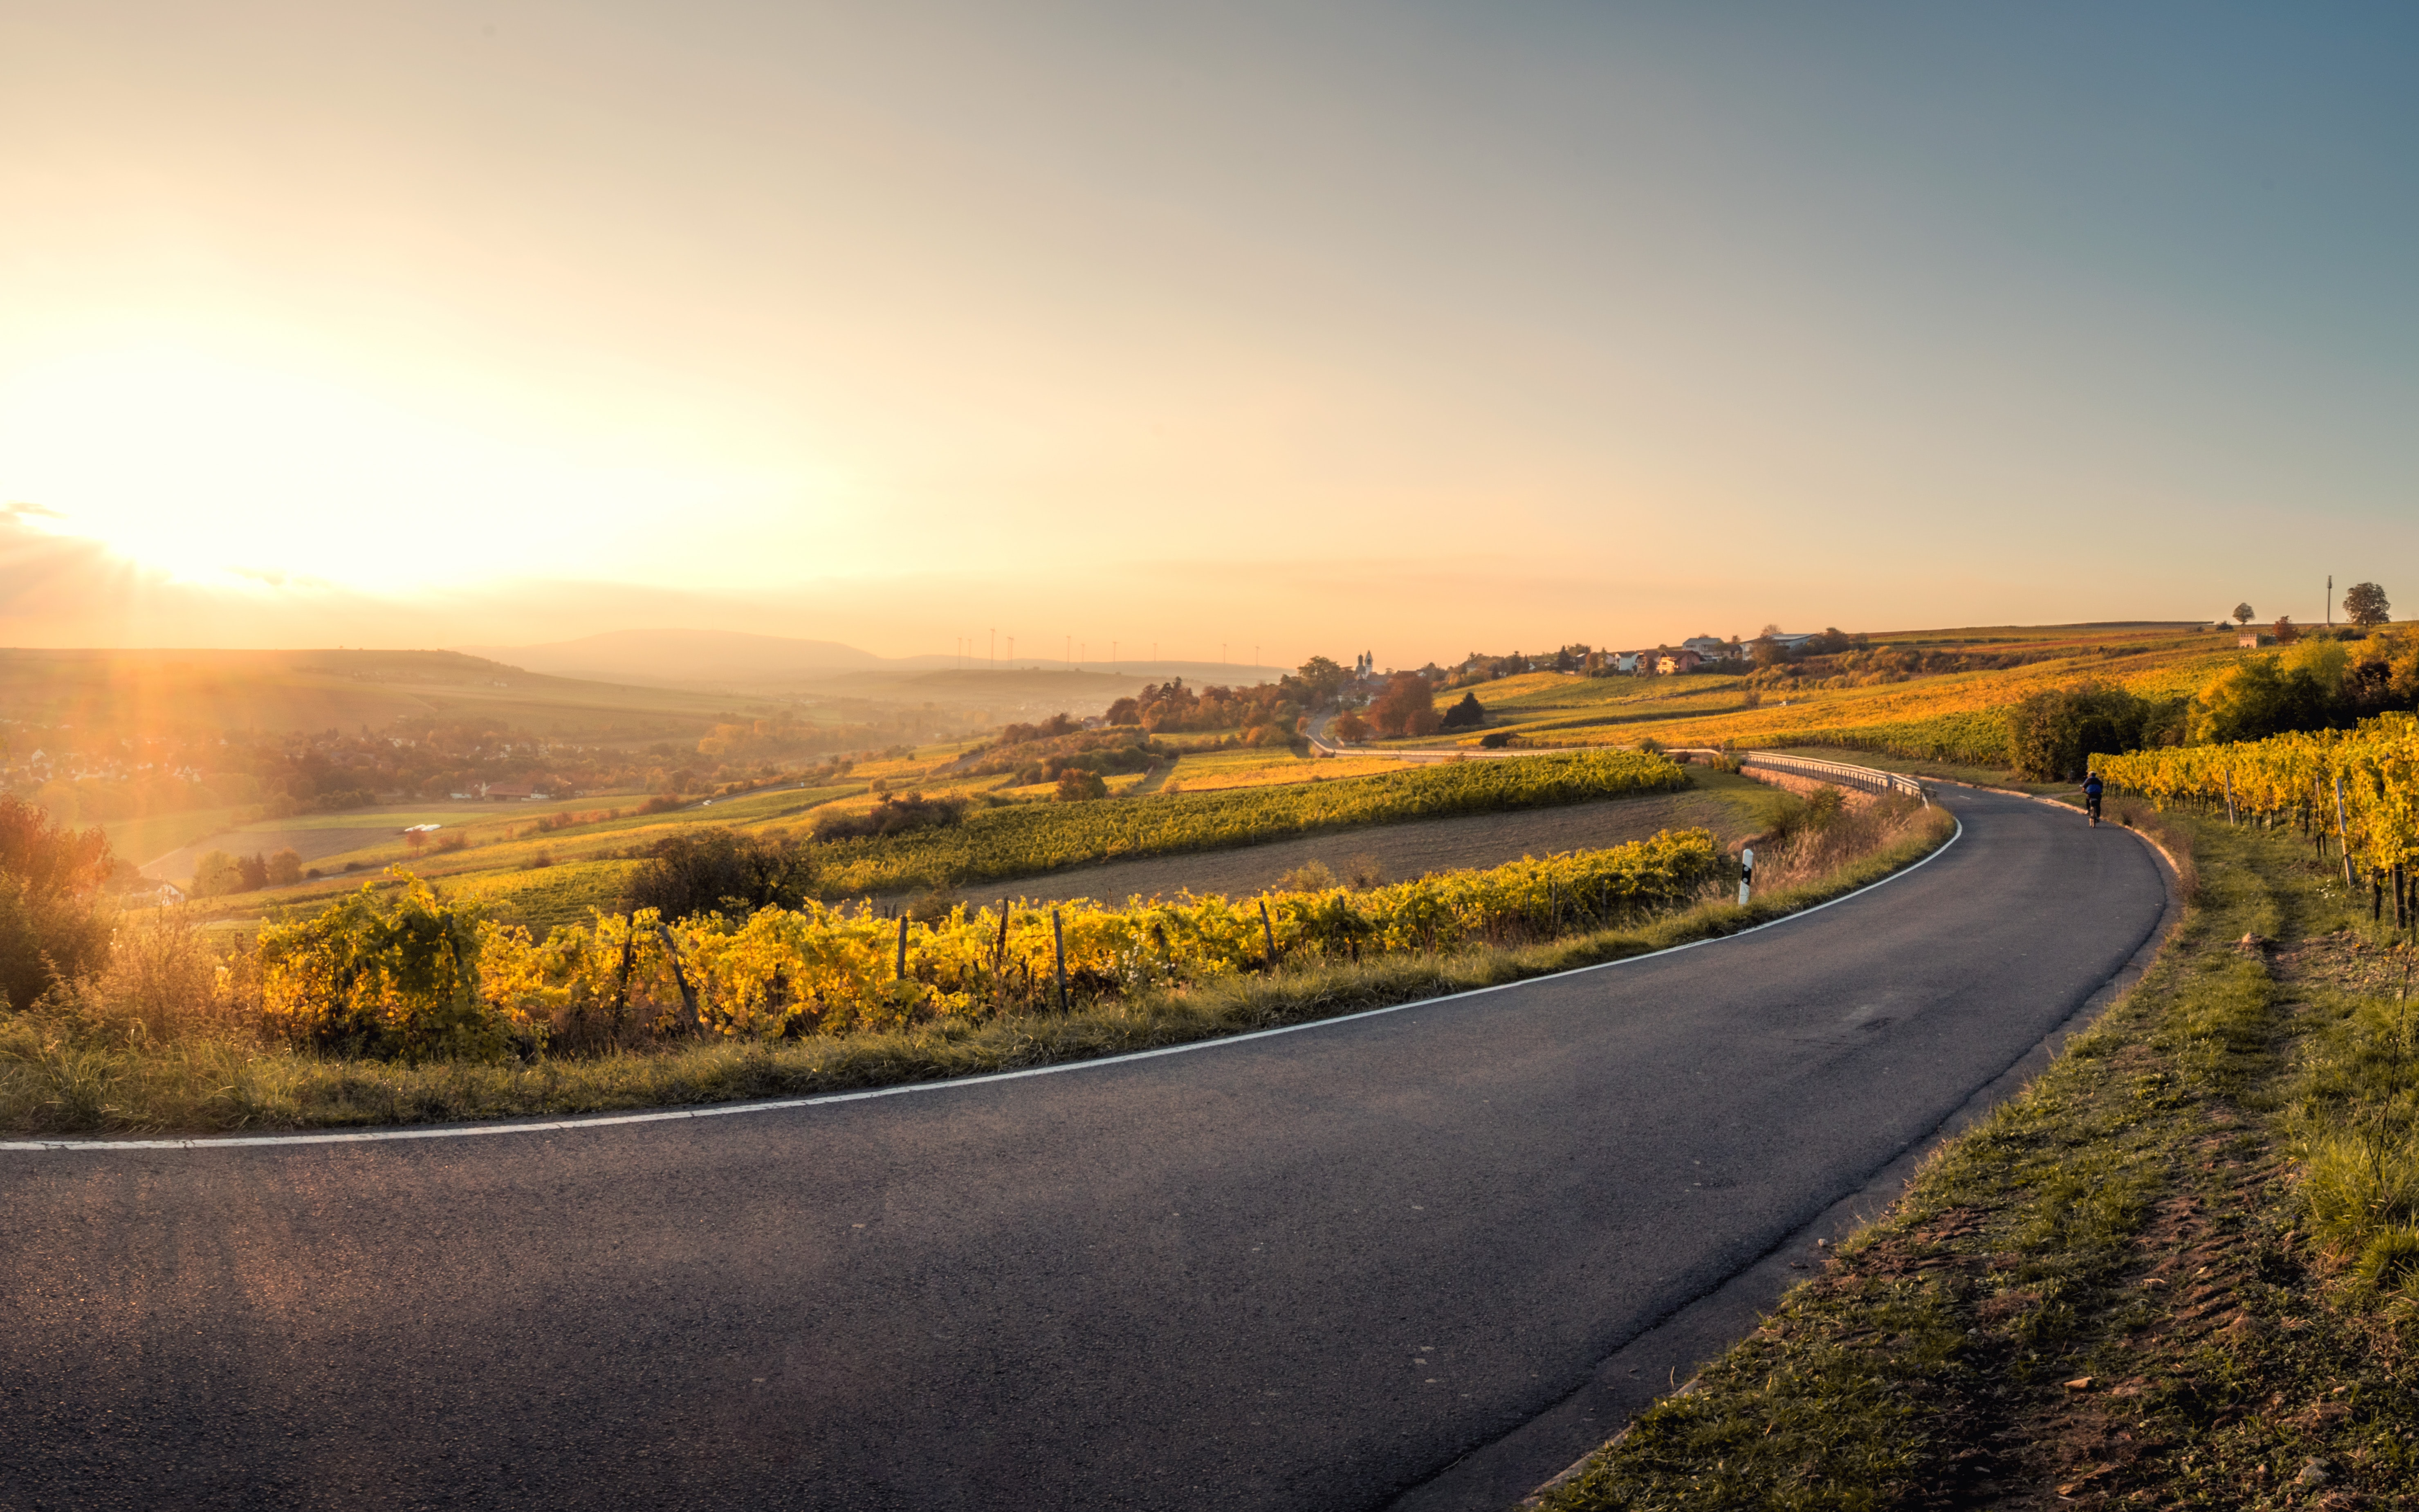 A sunset shines upon a winding asphalt road in Mölsheim, Germany and the many fields surrounding it